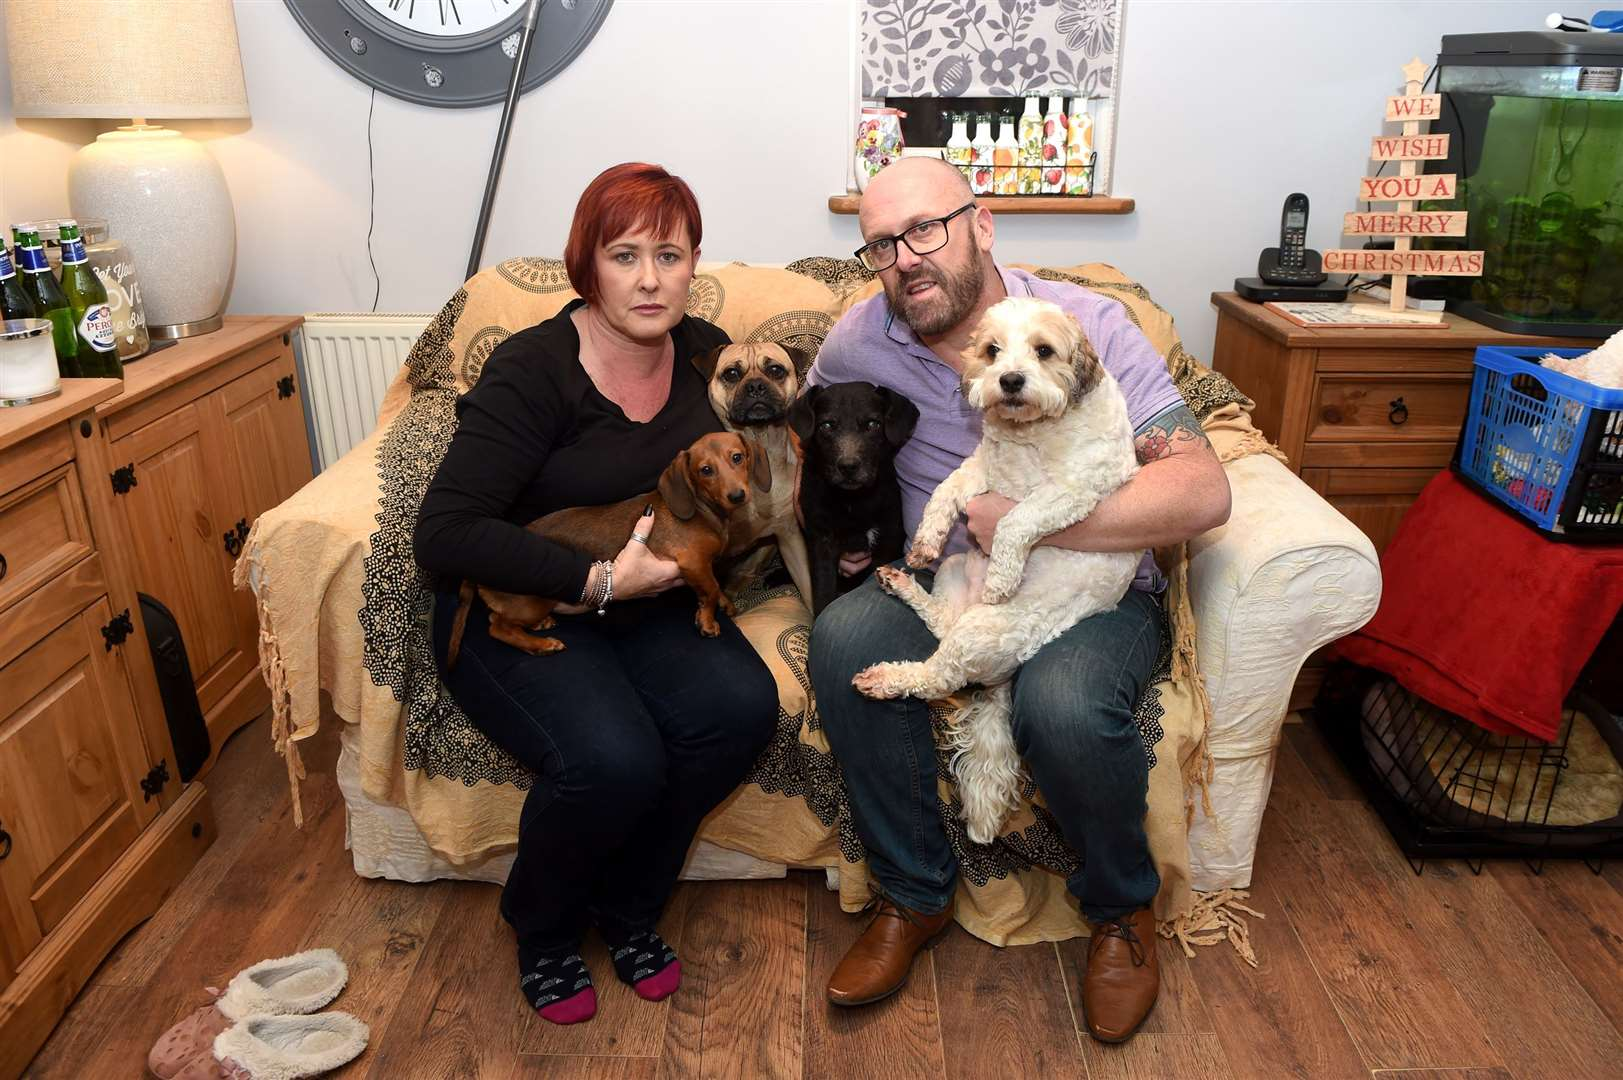 Gillian and Mark Chenery had to take their four dogs to the vet after they ate the poisonous treats. Pictured: Gillian and Mark Chenery with Dolly, Mollie, Rocky and Charlie. Picture by Mecha Morton.